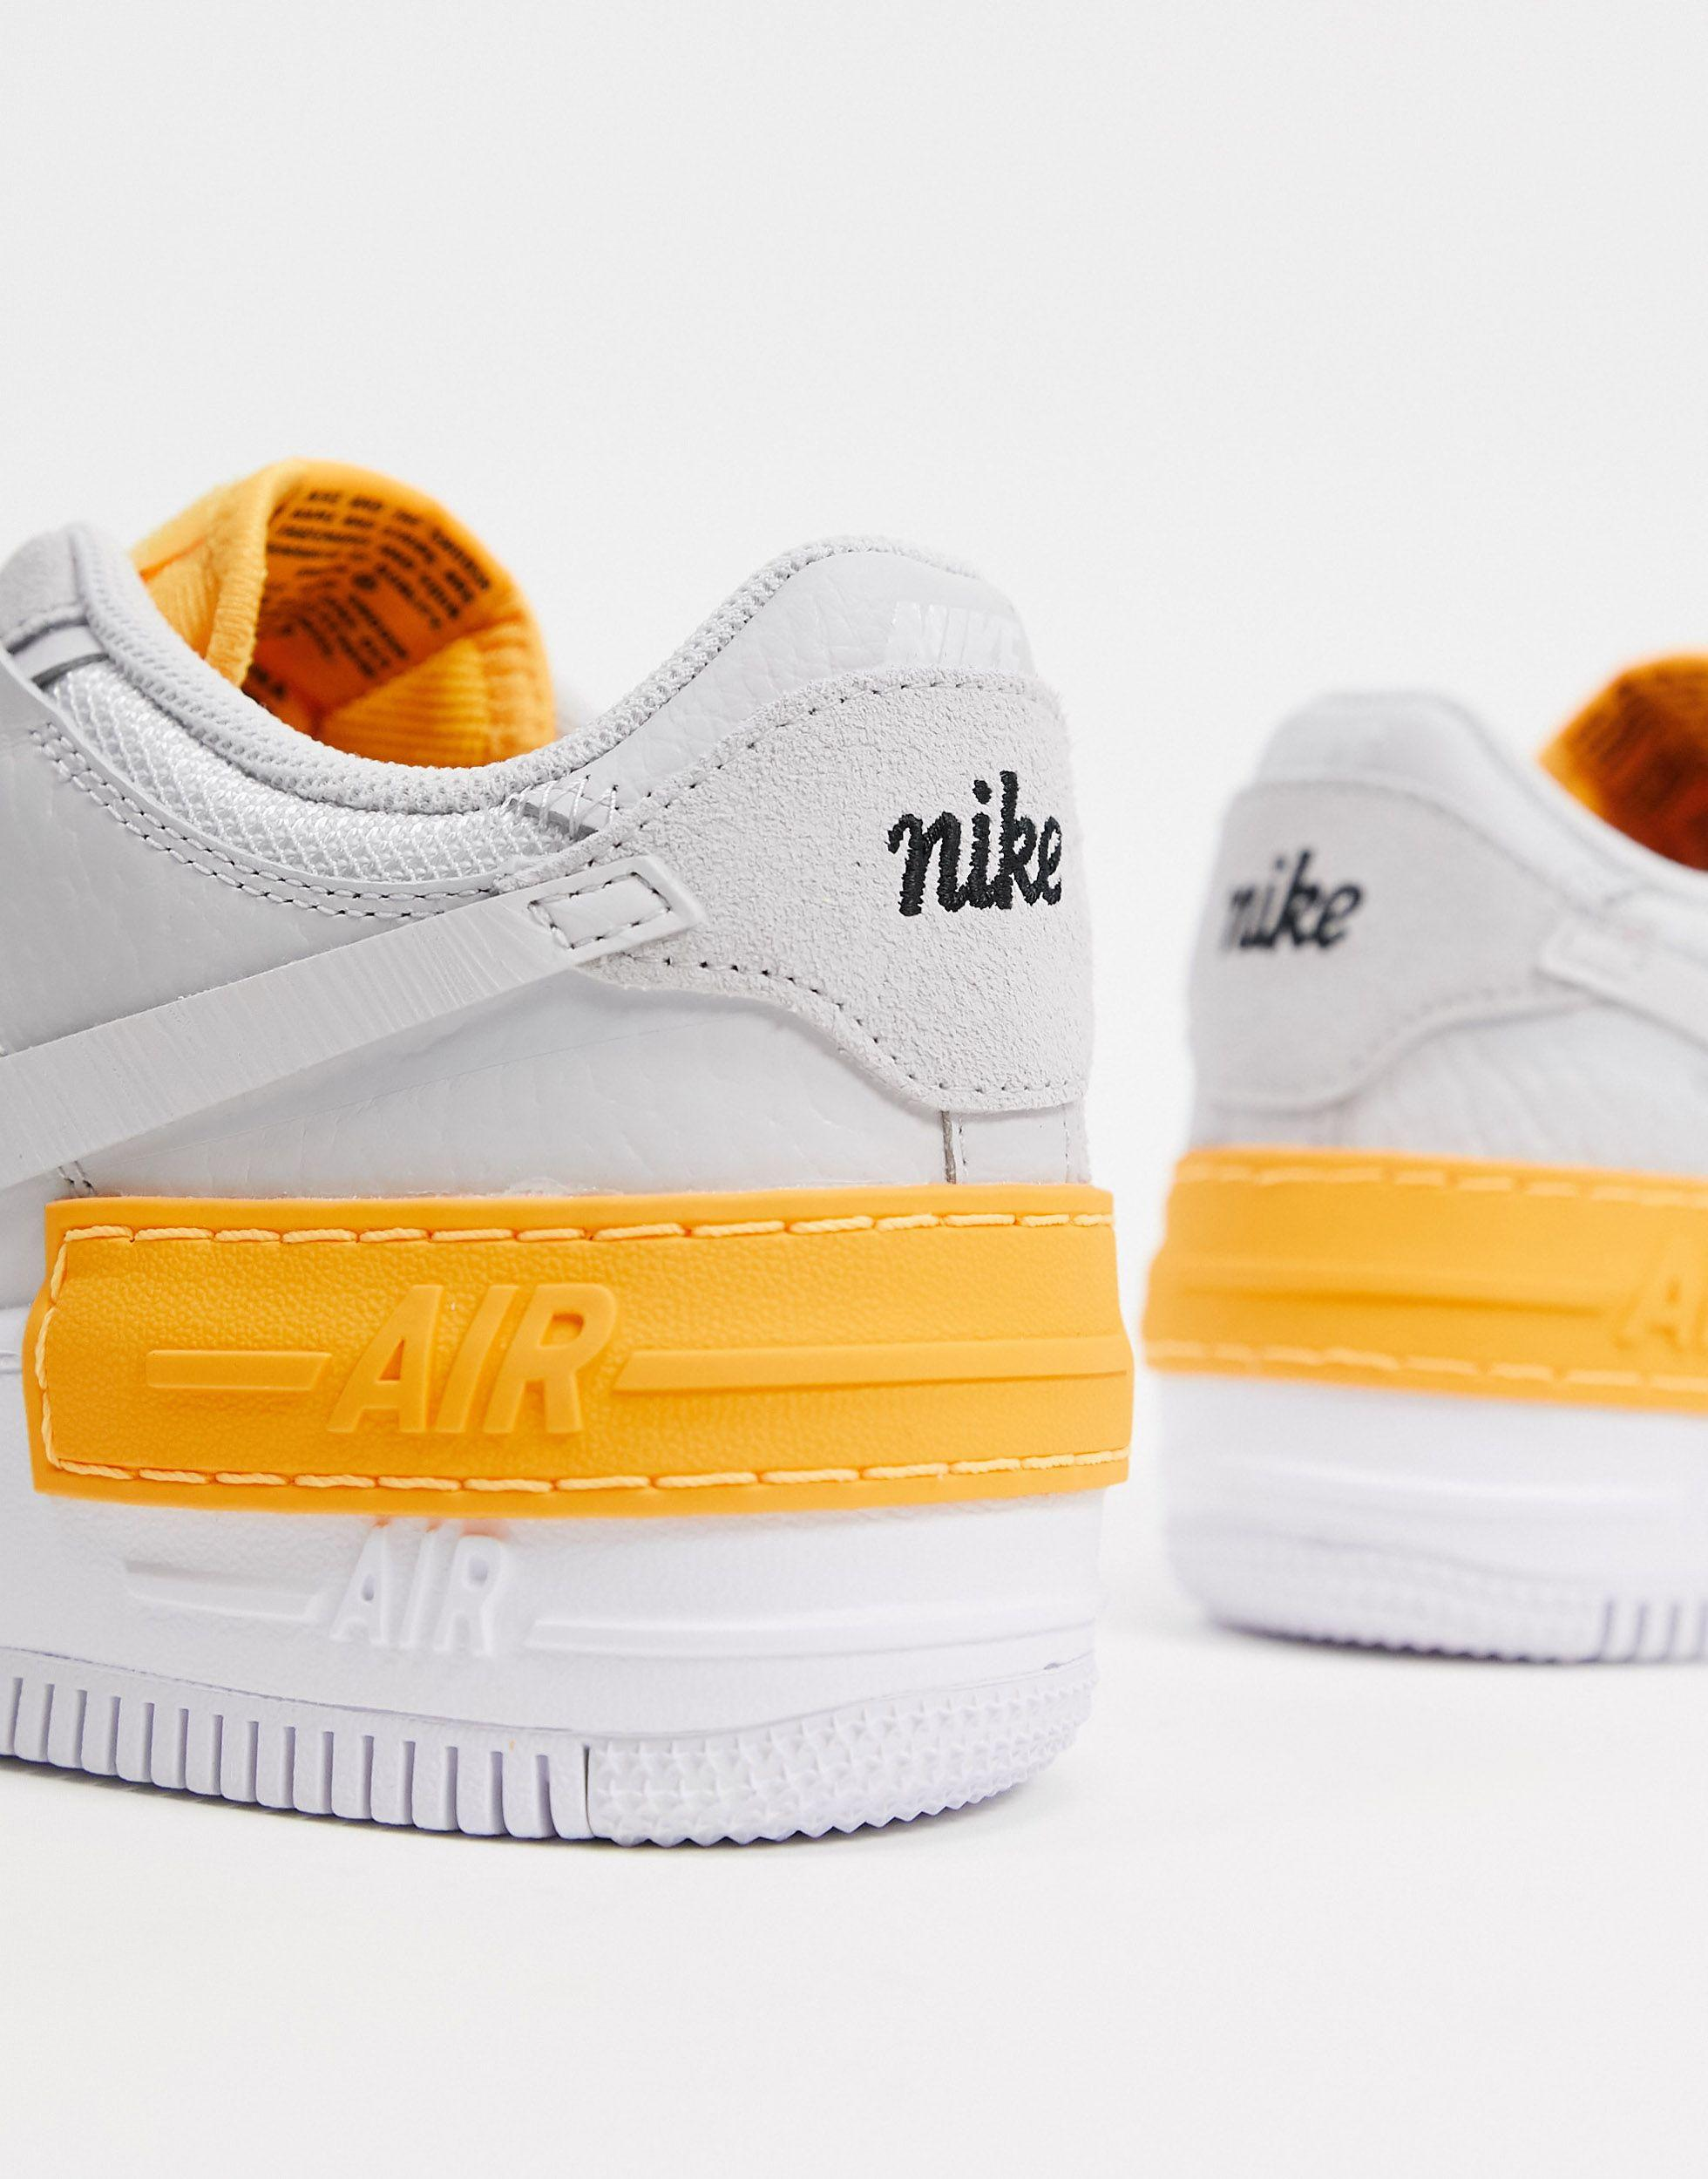 Nike Air Force 1 Shadow Shoe In Grey Grey Save 56 Lyst This iteration comes in a vast grey colourway with retro orange accents. air force 1 shadow shoe